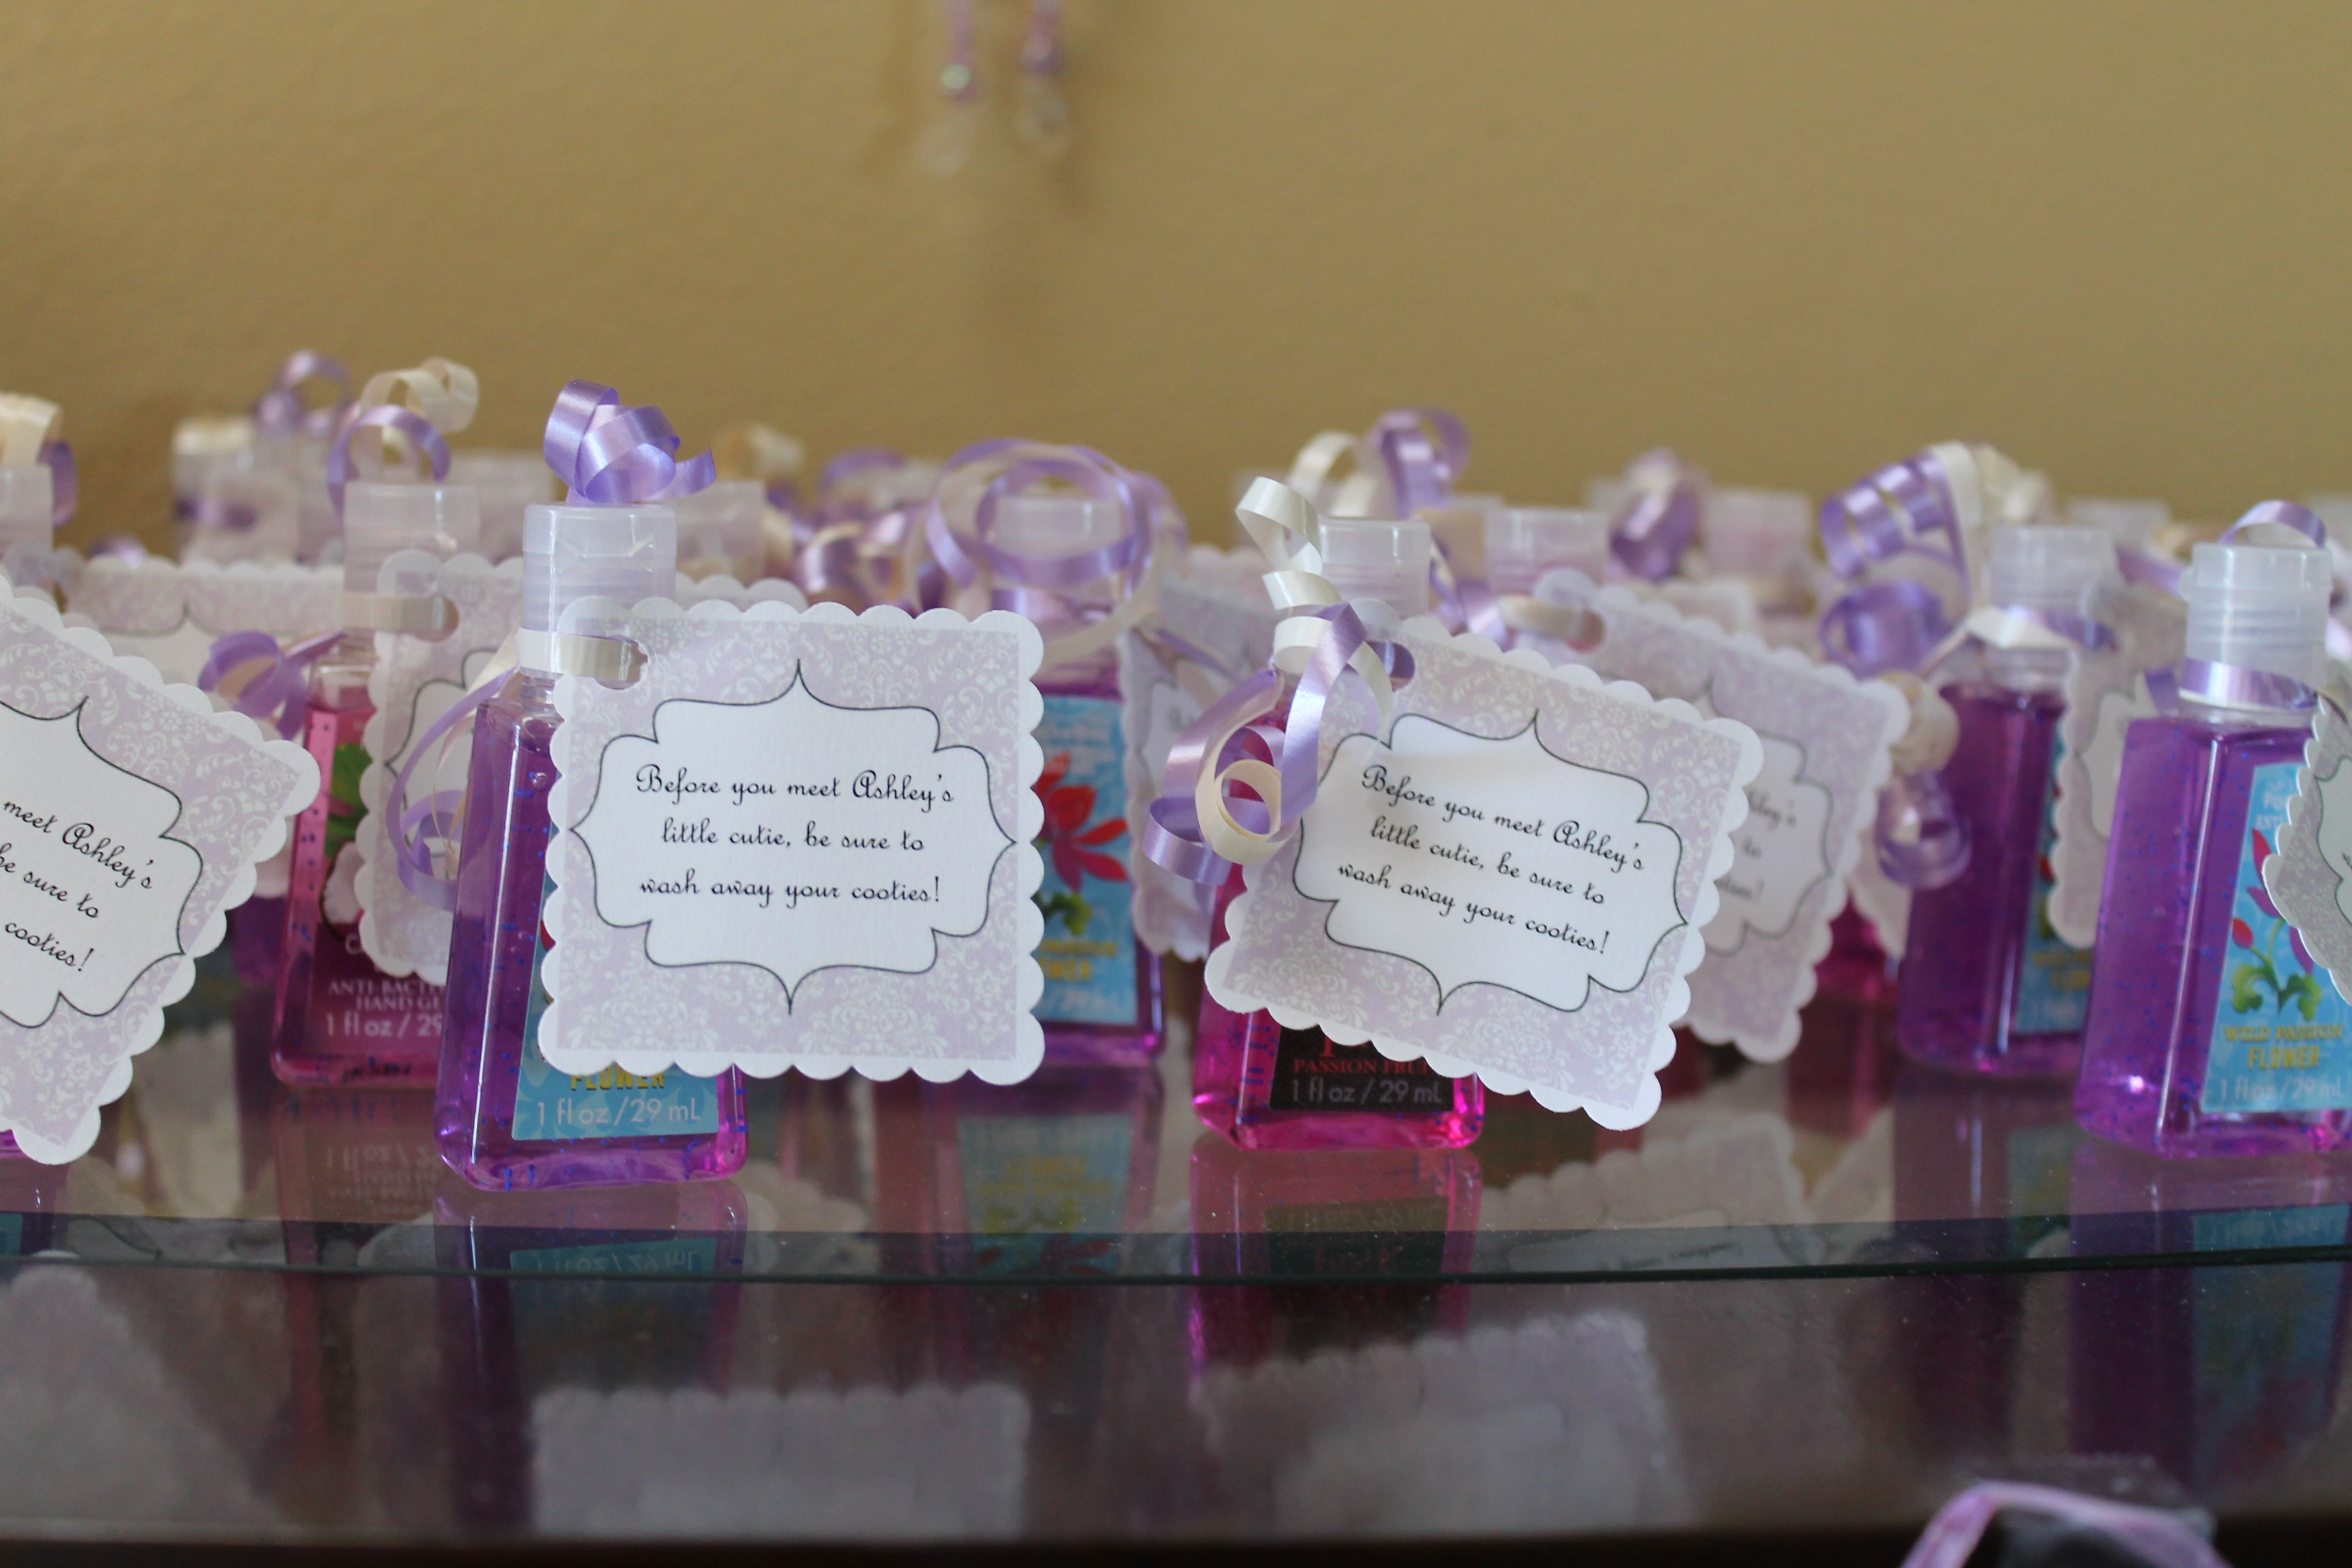 Baby Shower Favors Hand Sanitizer Tag Says Before You Meet